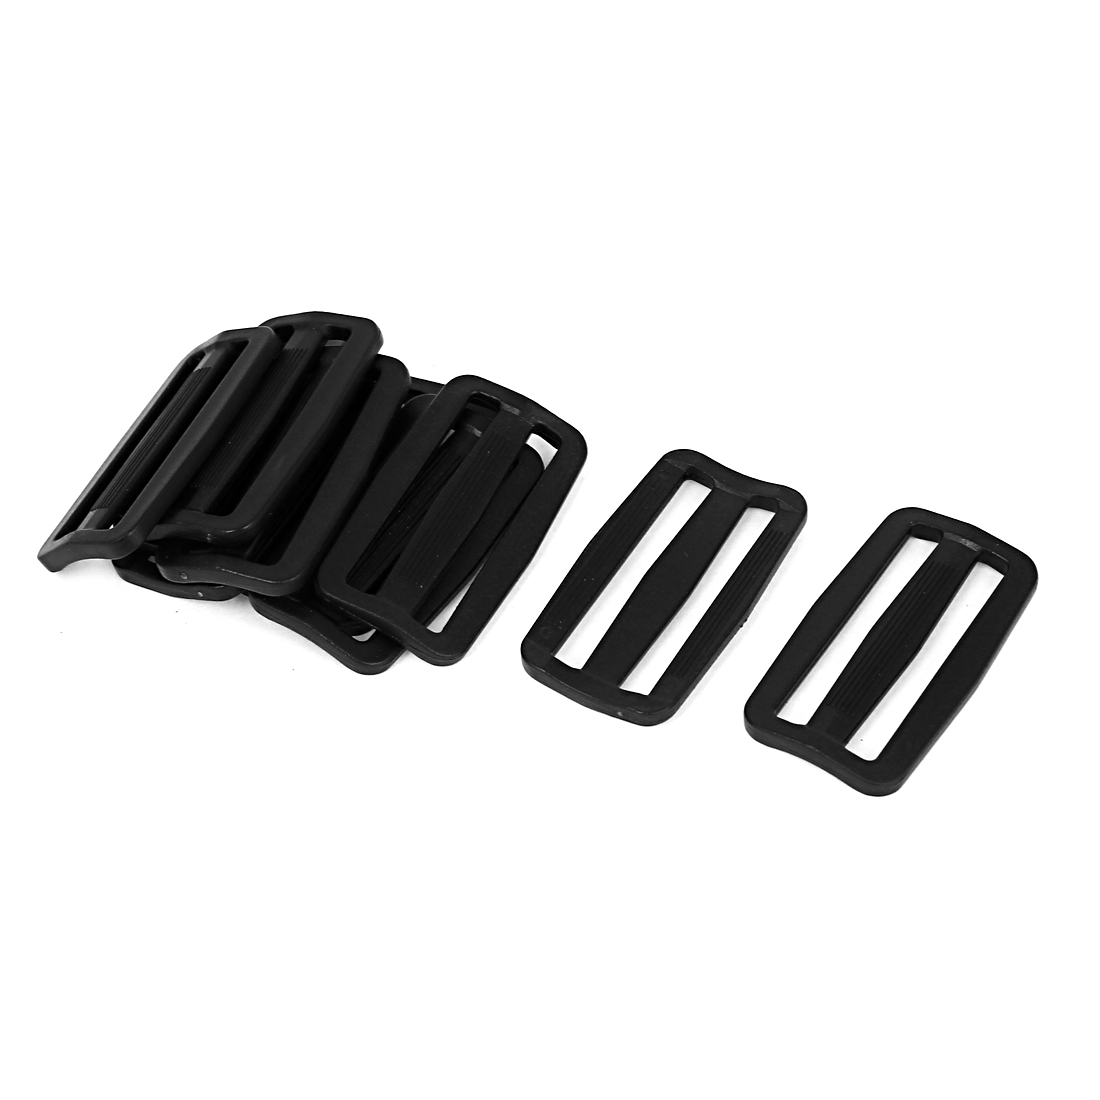 10 Pcs Black Hard Plastic Slide Rectangle Buckle Luggage Bag Replacement 5.0CM